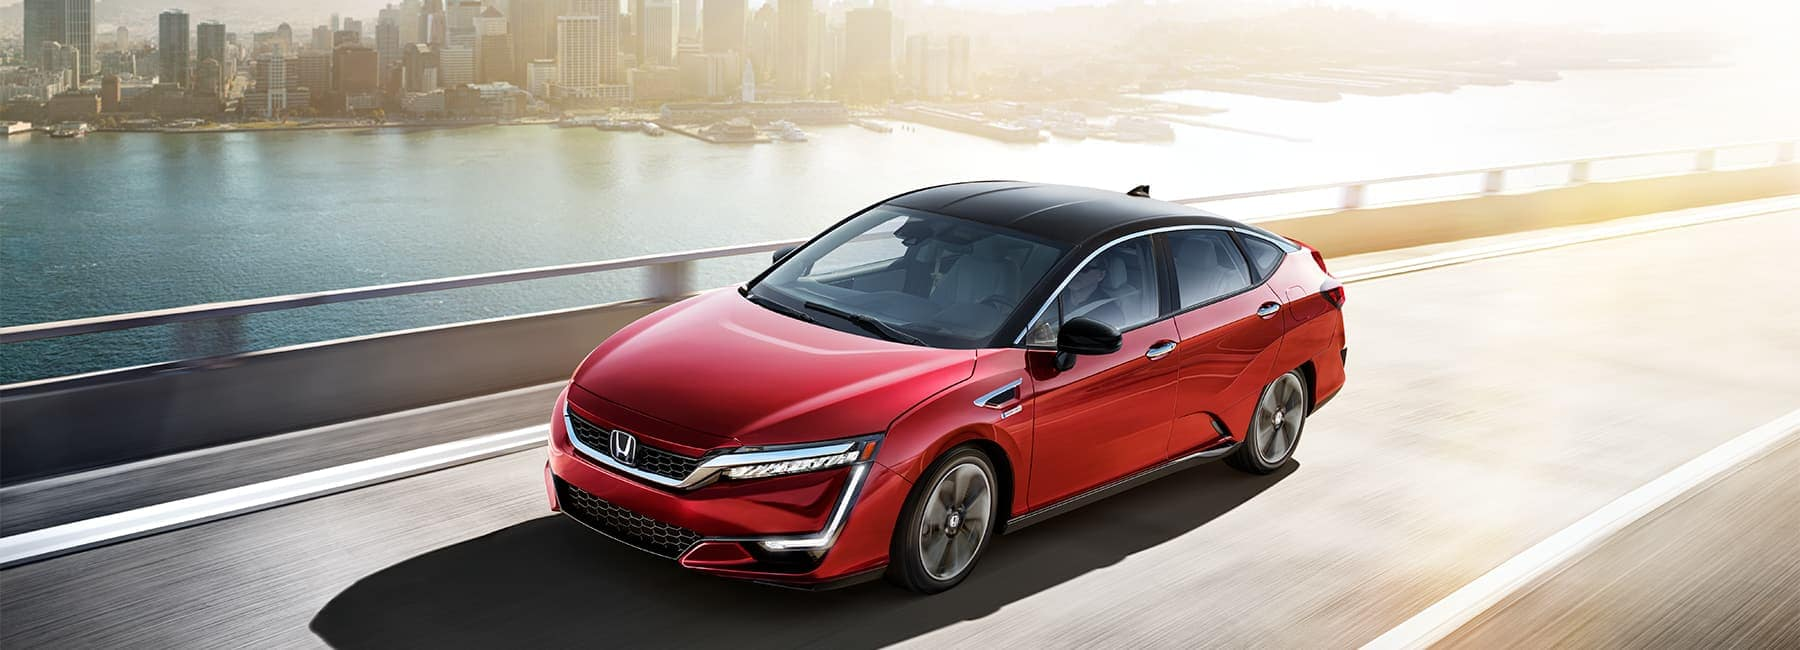 2020 Honda Clarity side View